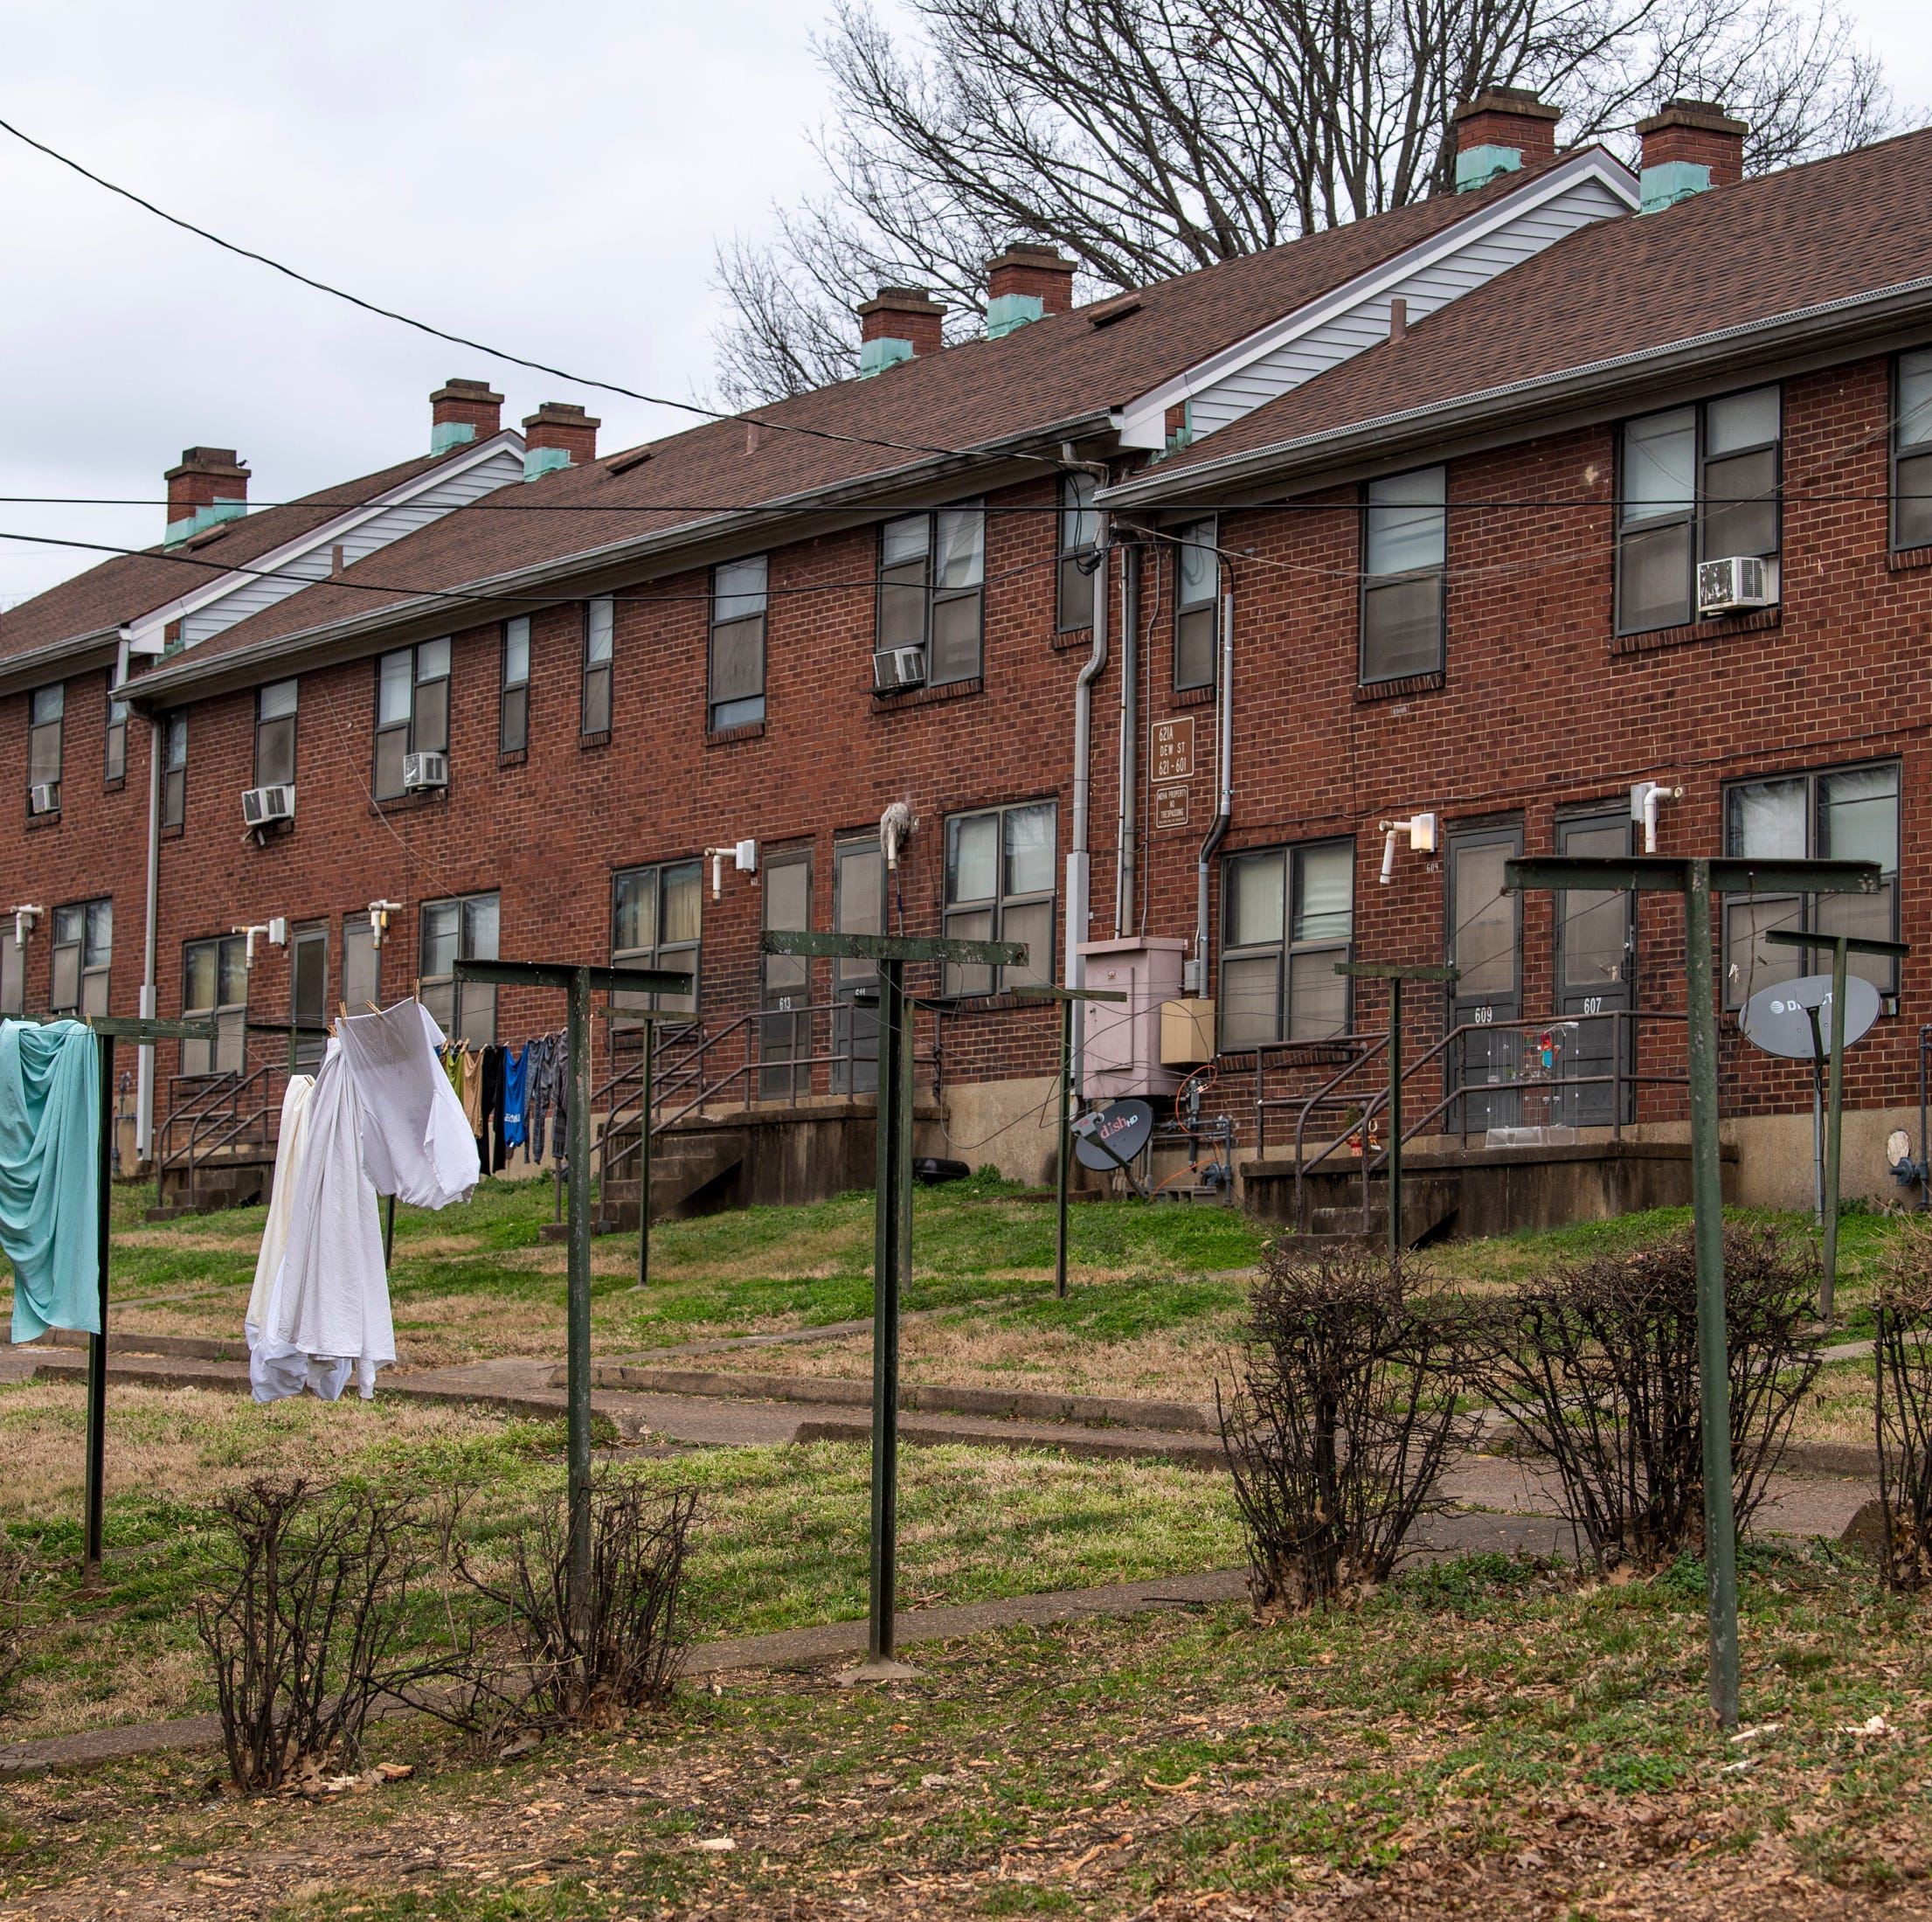 Nashville public housing redevelopment painstakingly slow as funding hard to find